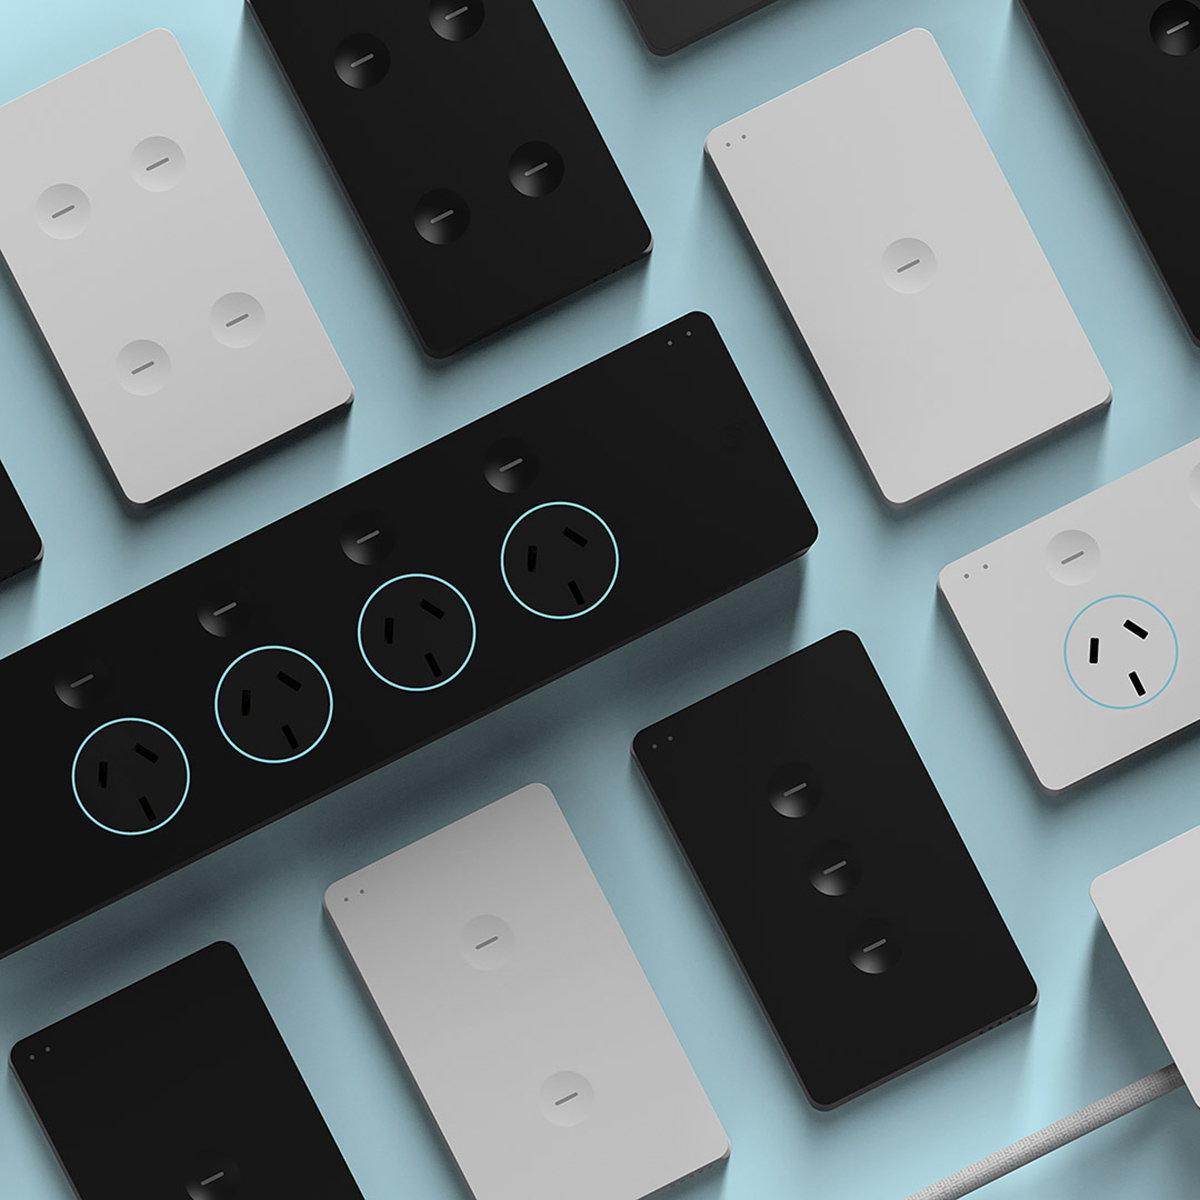 iKEON Smart Power Outlets and Light Switches Win 2019 iF Design Awards